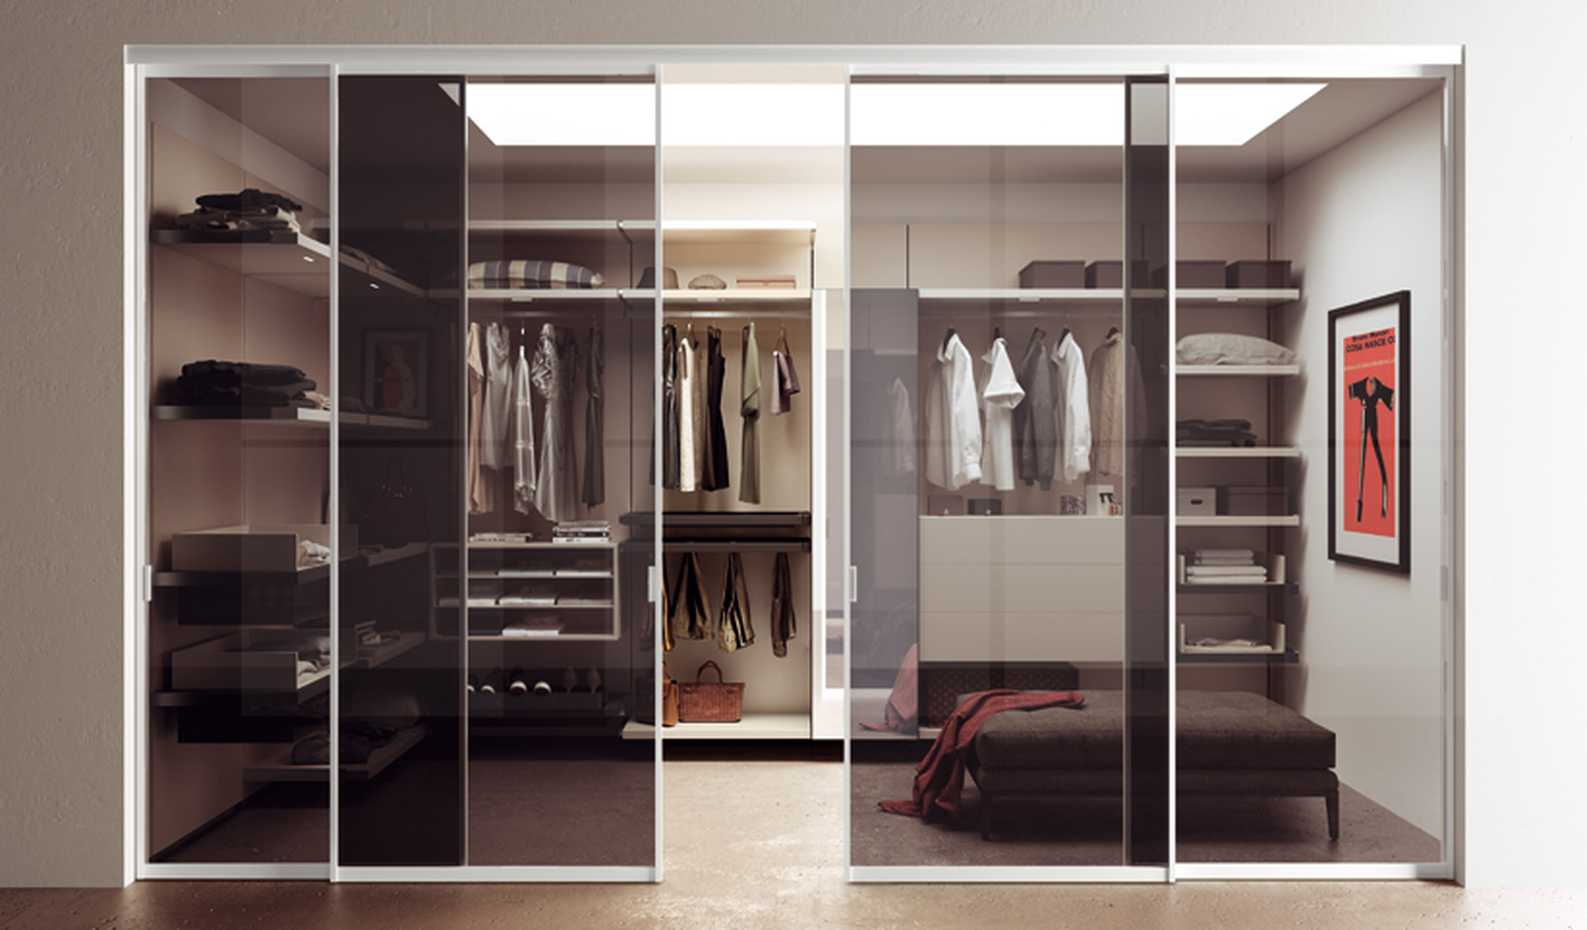 Rack Walk-in Wardrobe by Mercantini product image 3